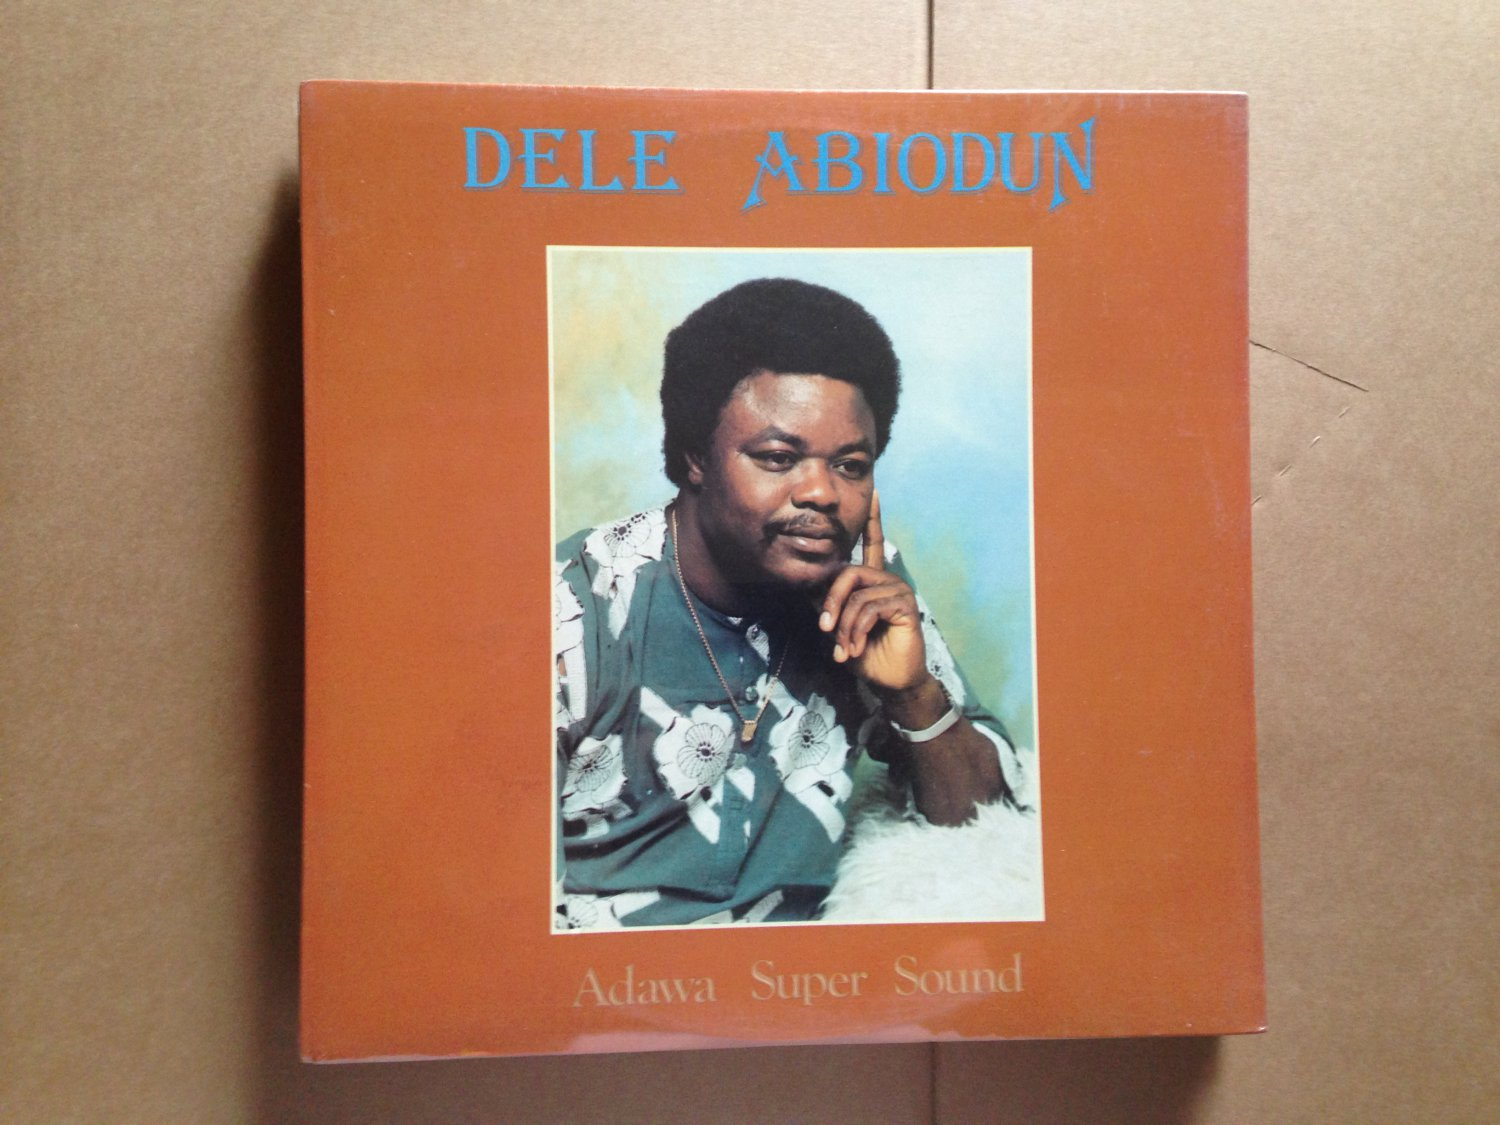 DELE ABIODUN LP adawa super sound NIGERIA AFRO FUNK SEALED